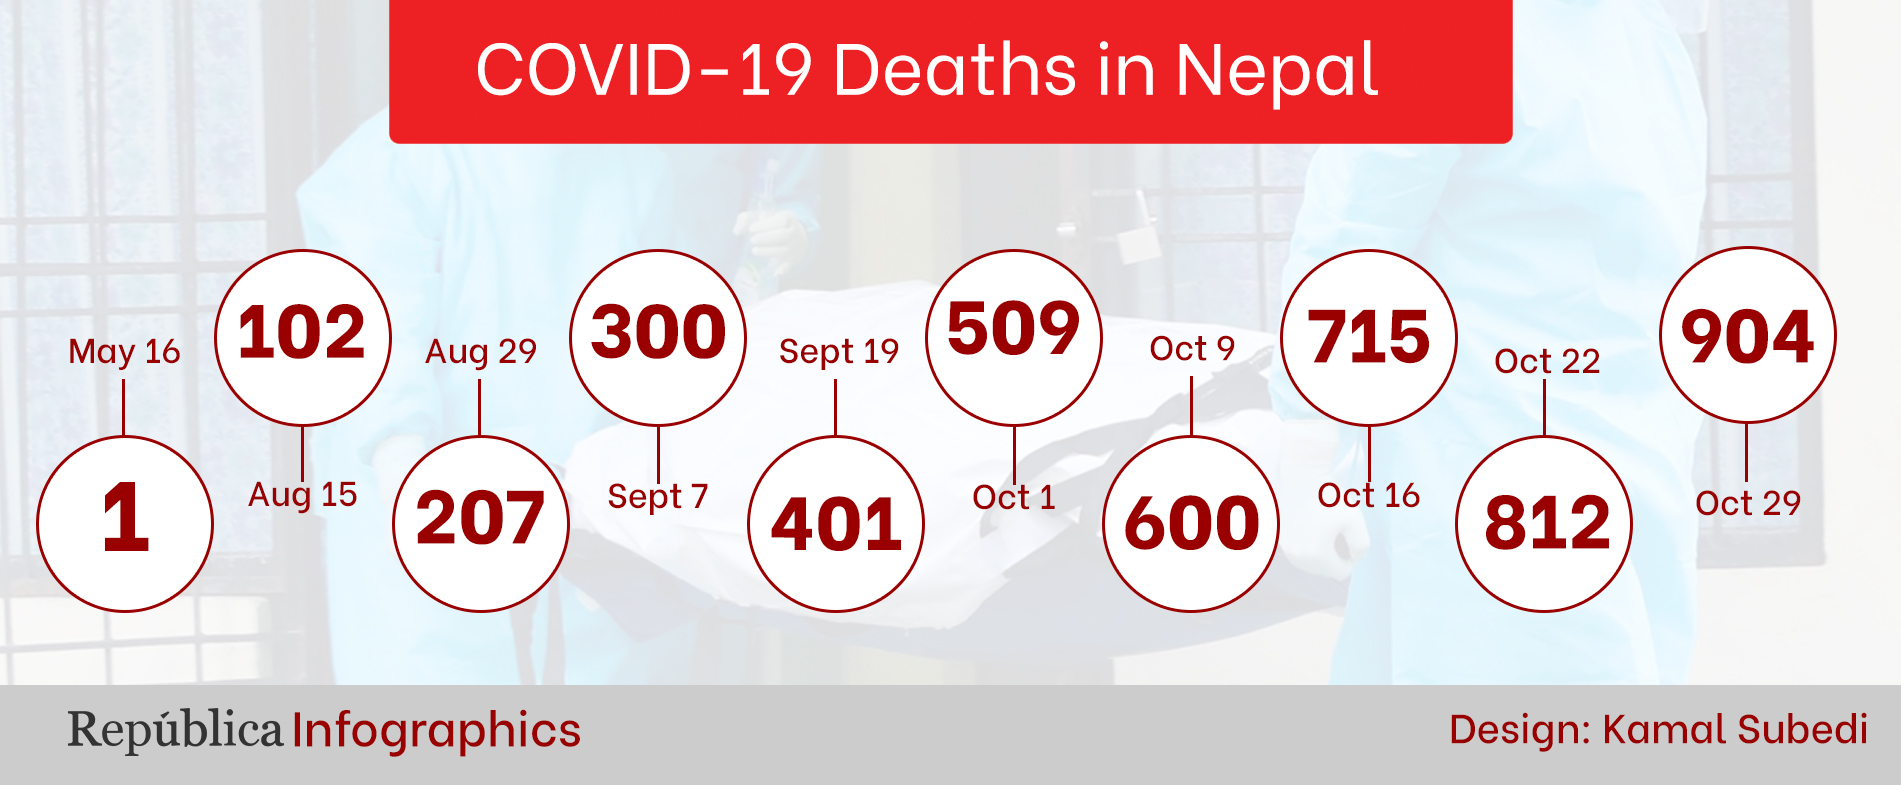 COVID-19 kills 406 people in just 29 days, Nepal's death tally goes past 900